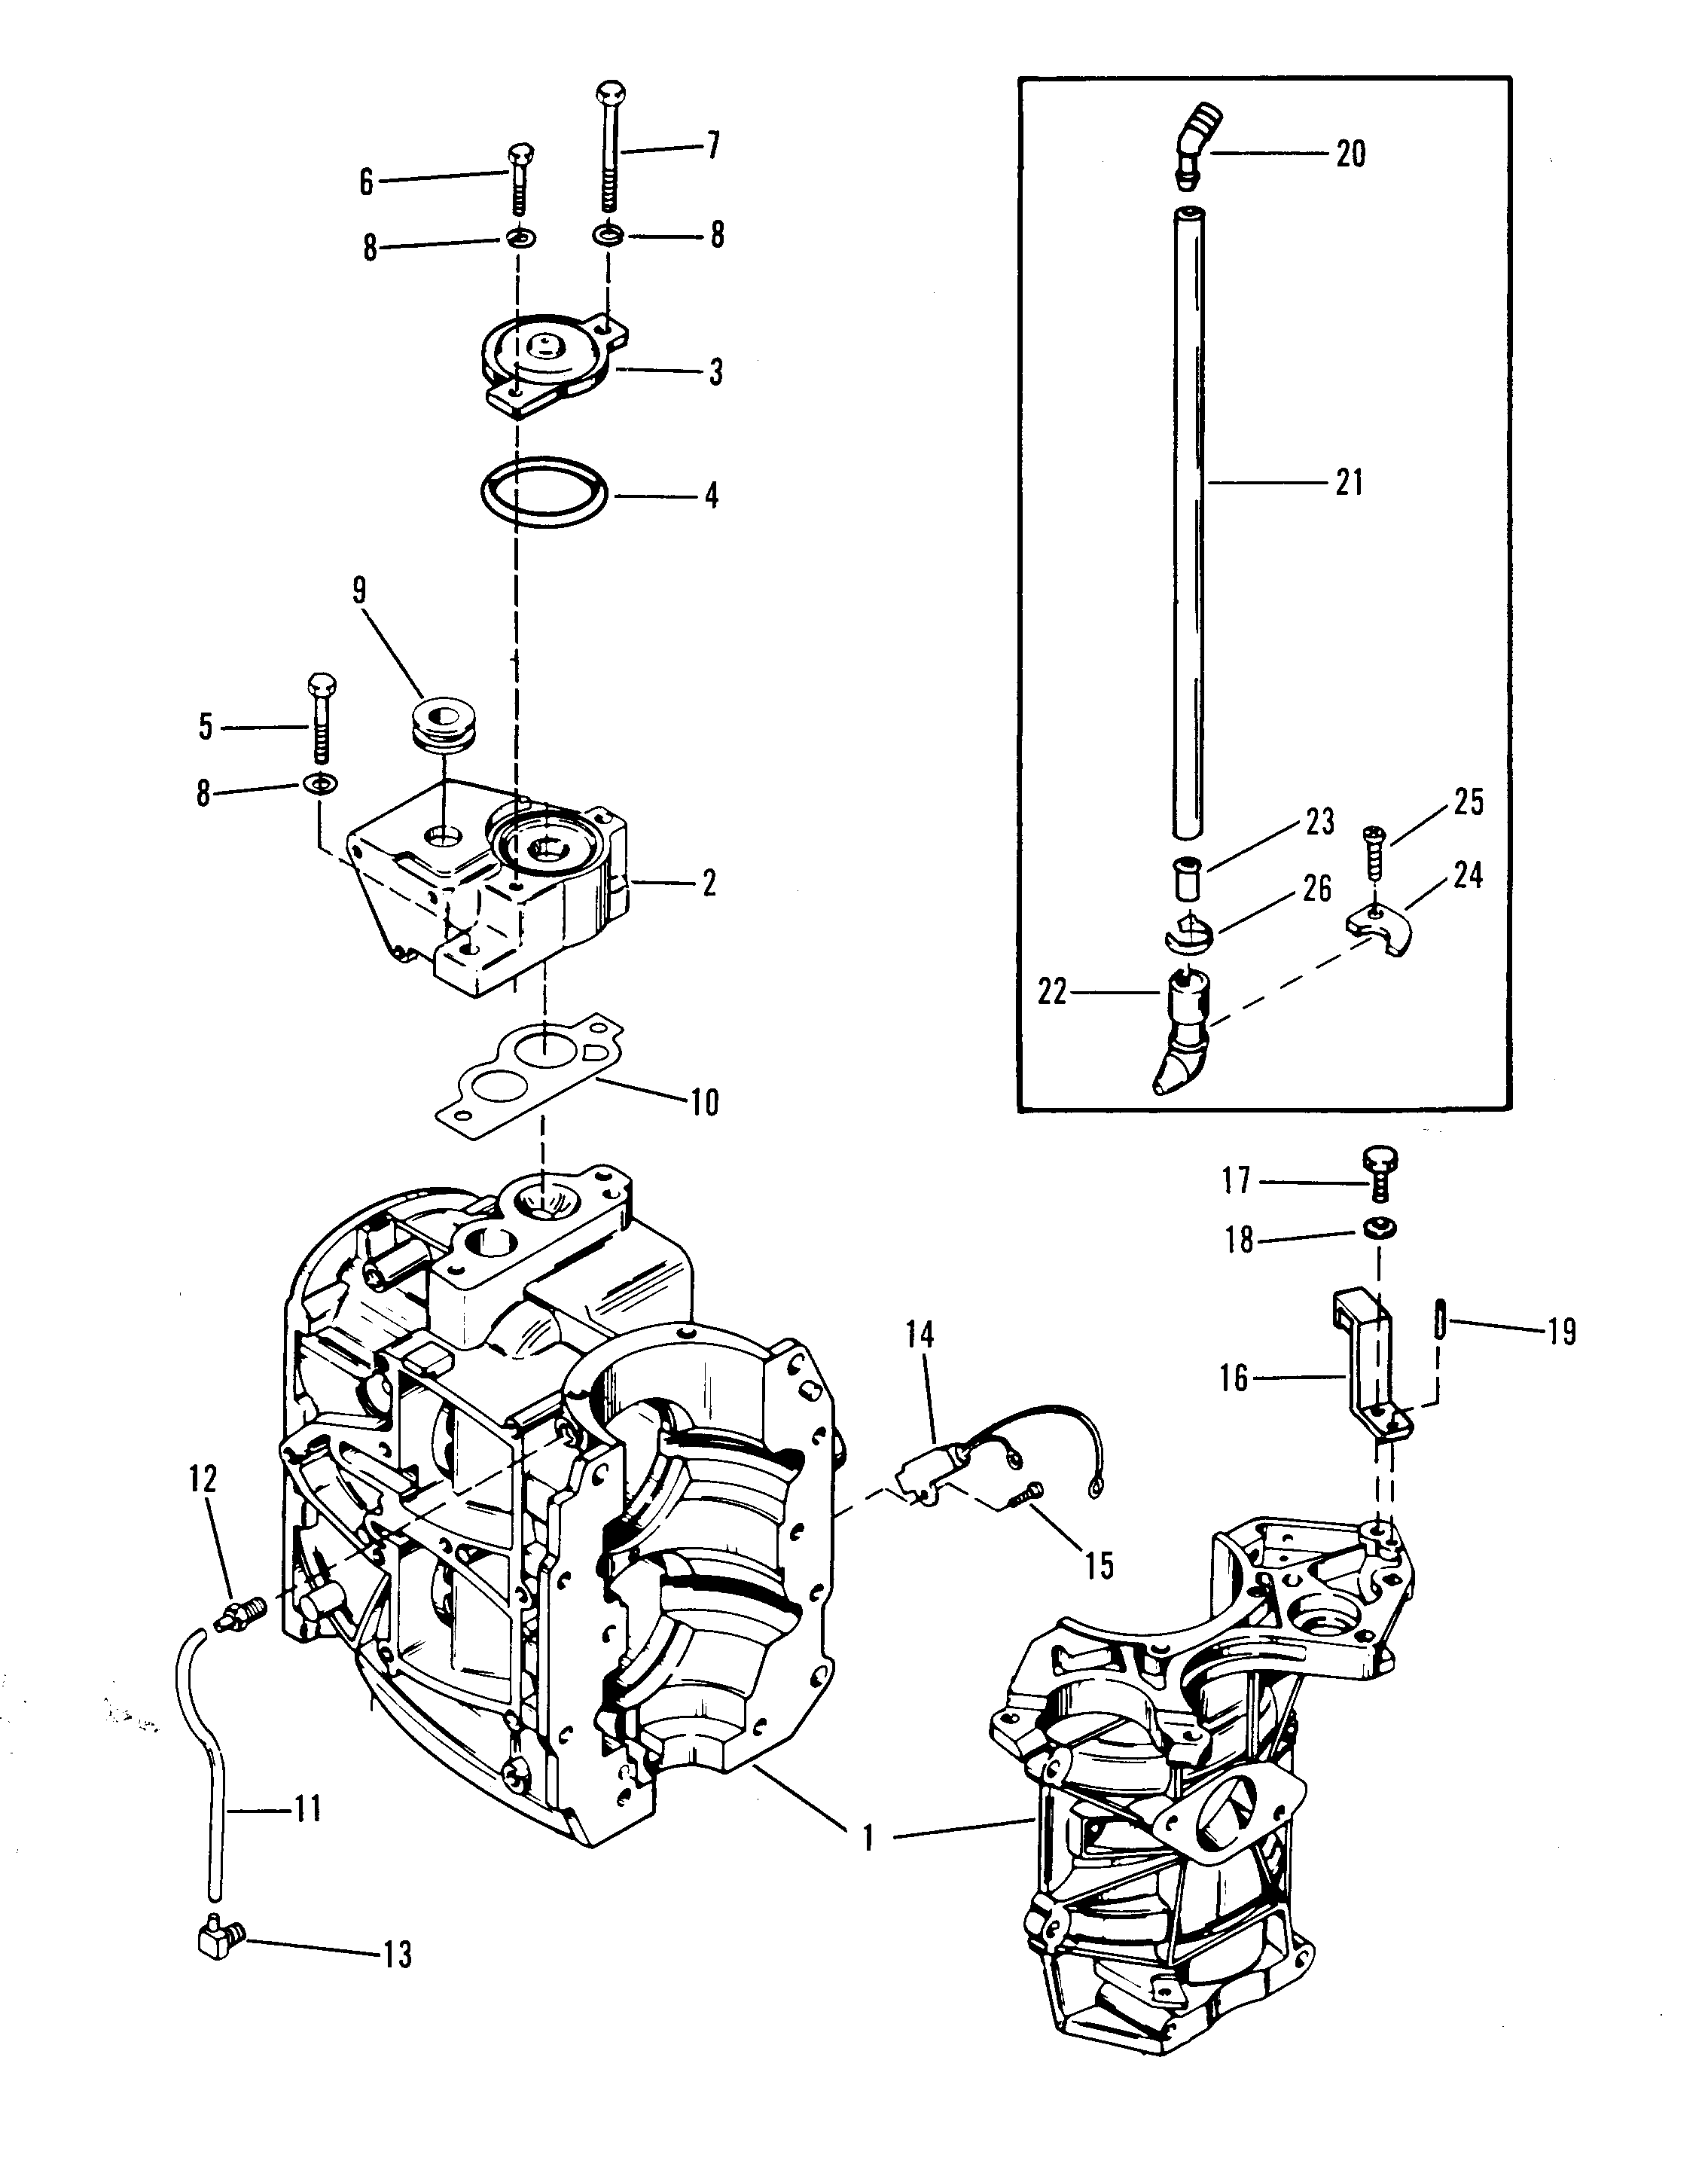 CYLINDER BLOCK AND THERMOSTAT FOR MERCURY 35 H.P.